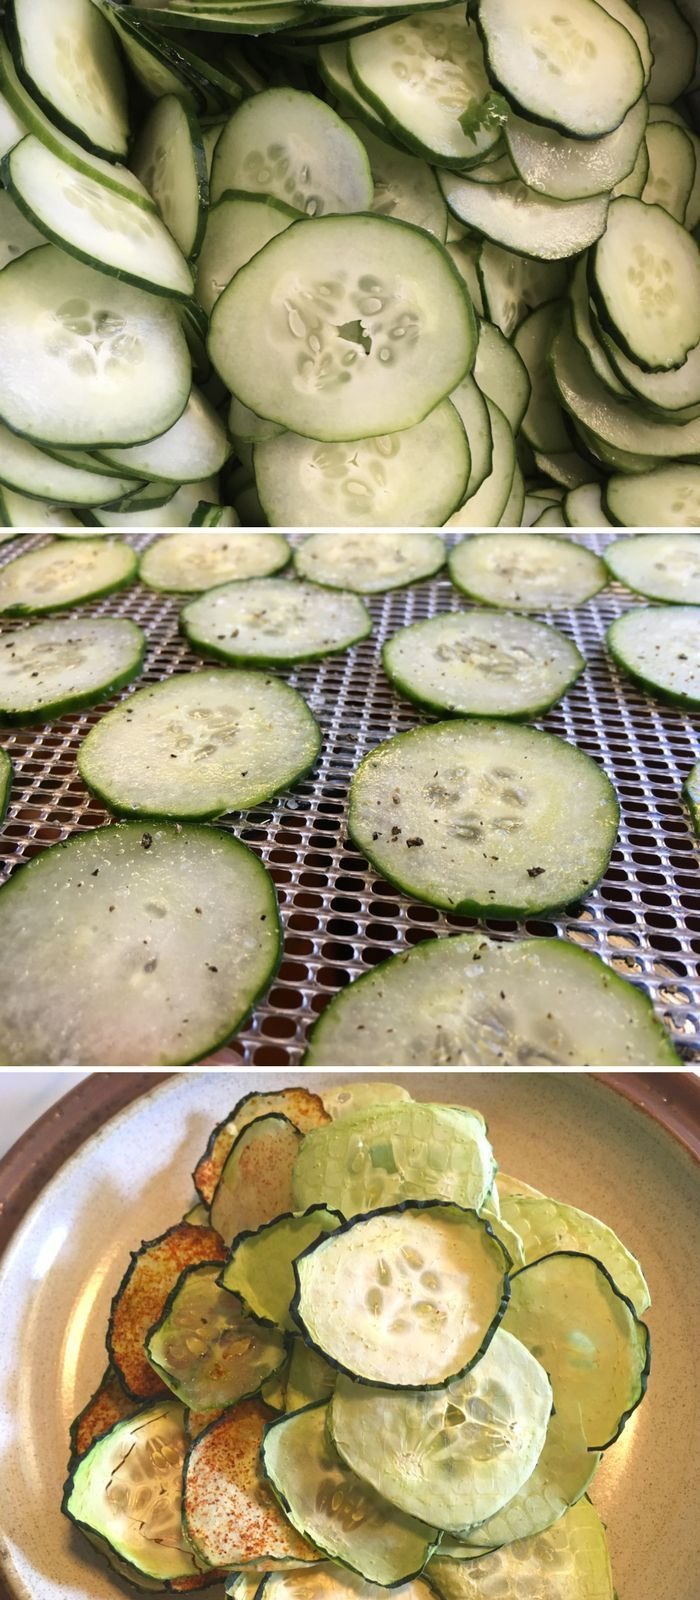 Preserve cucumbers by dehydrating them! Make cucumber chips with 5 different flavor options. Food Preservation | Dehydrating | Preserve Cucumbers